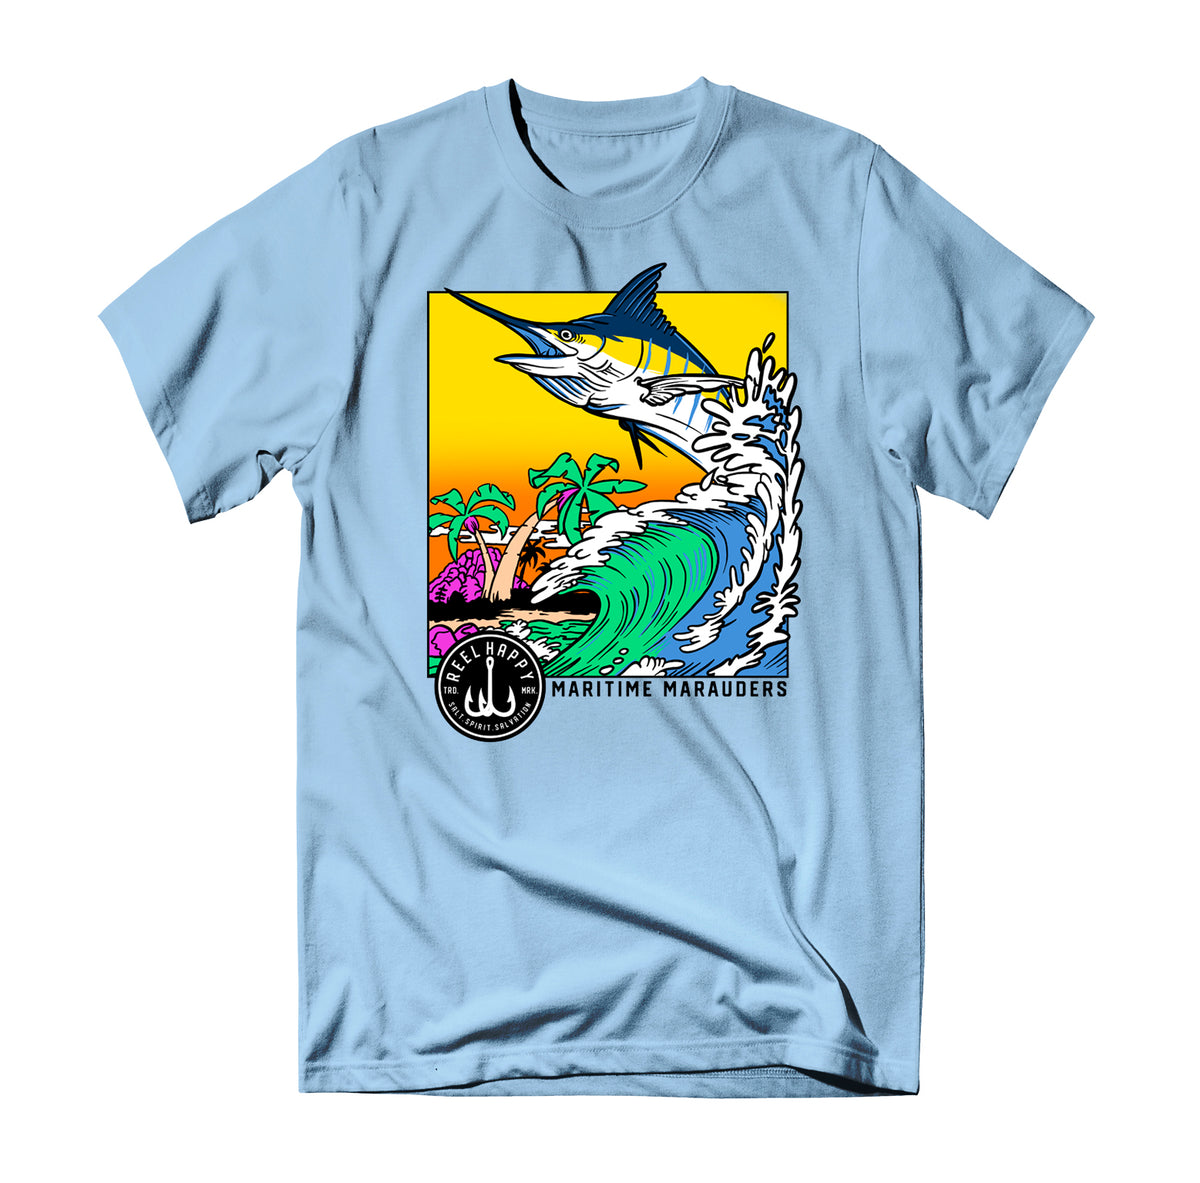 Bob Marlin T-Shirt - Light Blue - Reel Happy Co